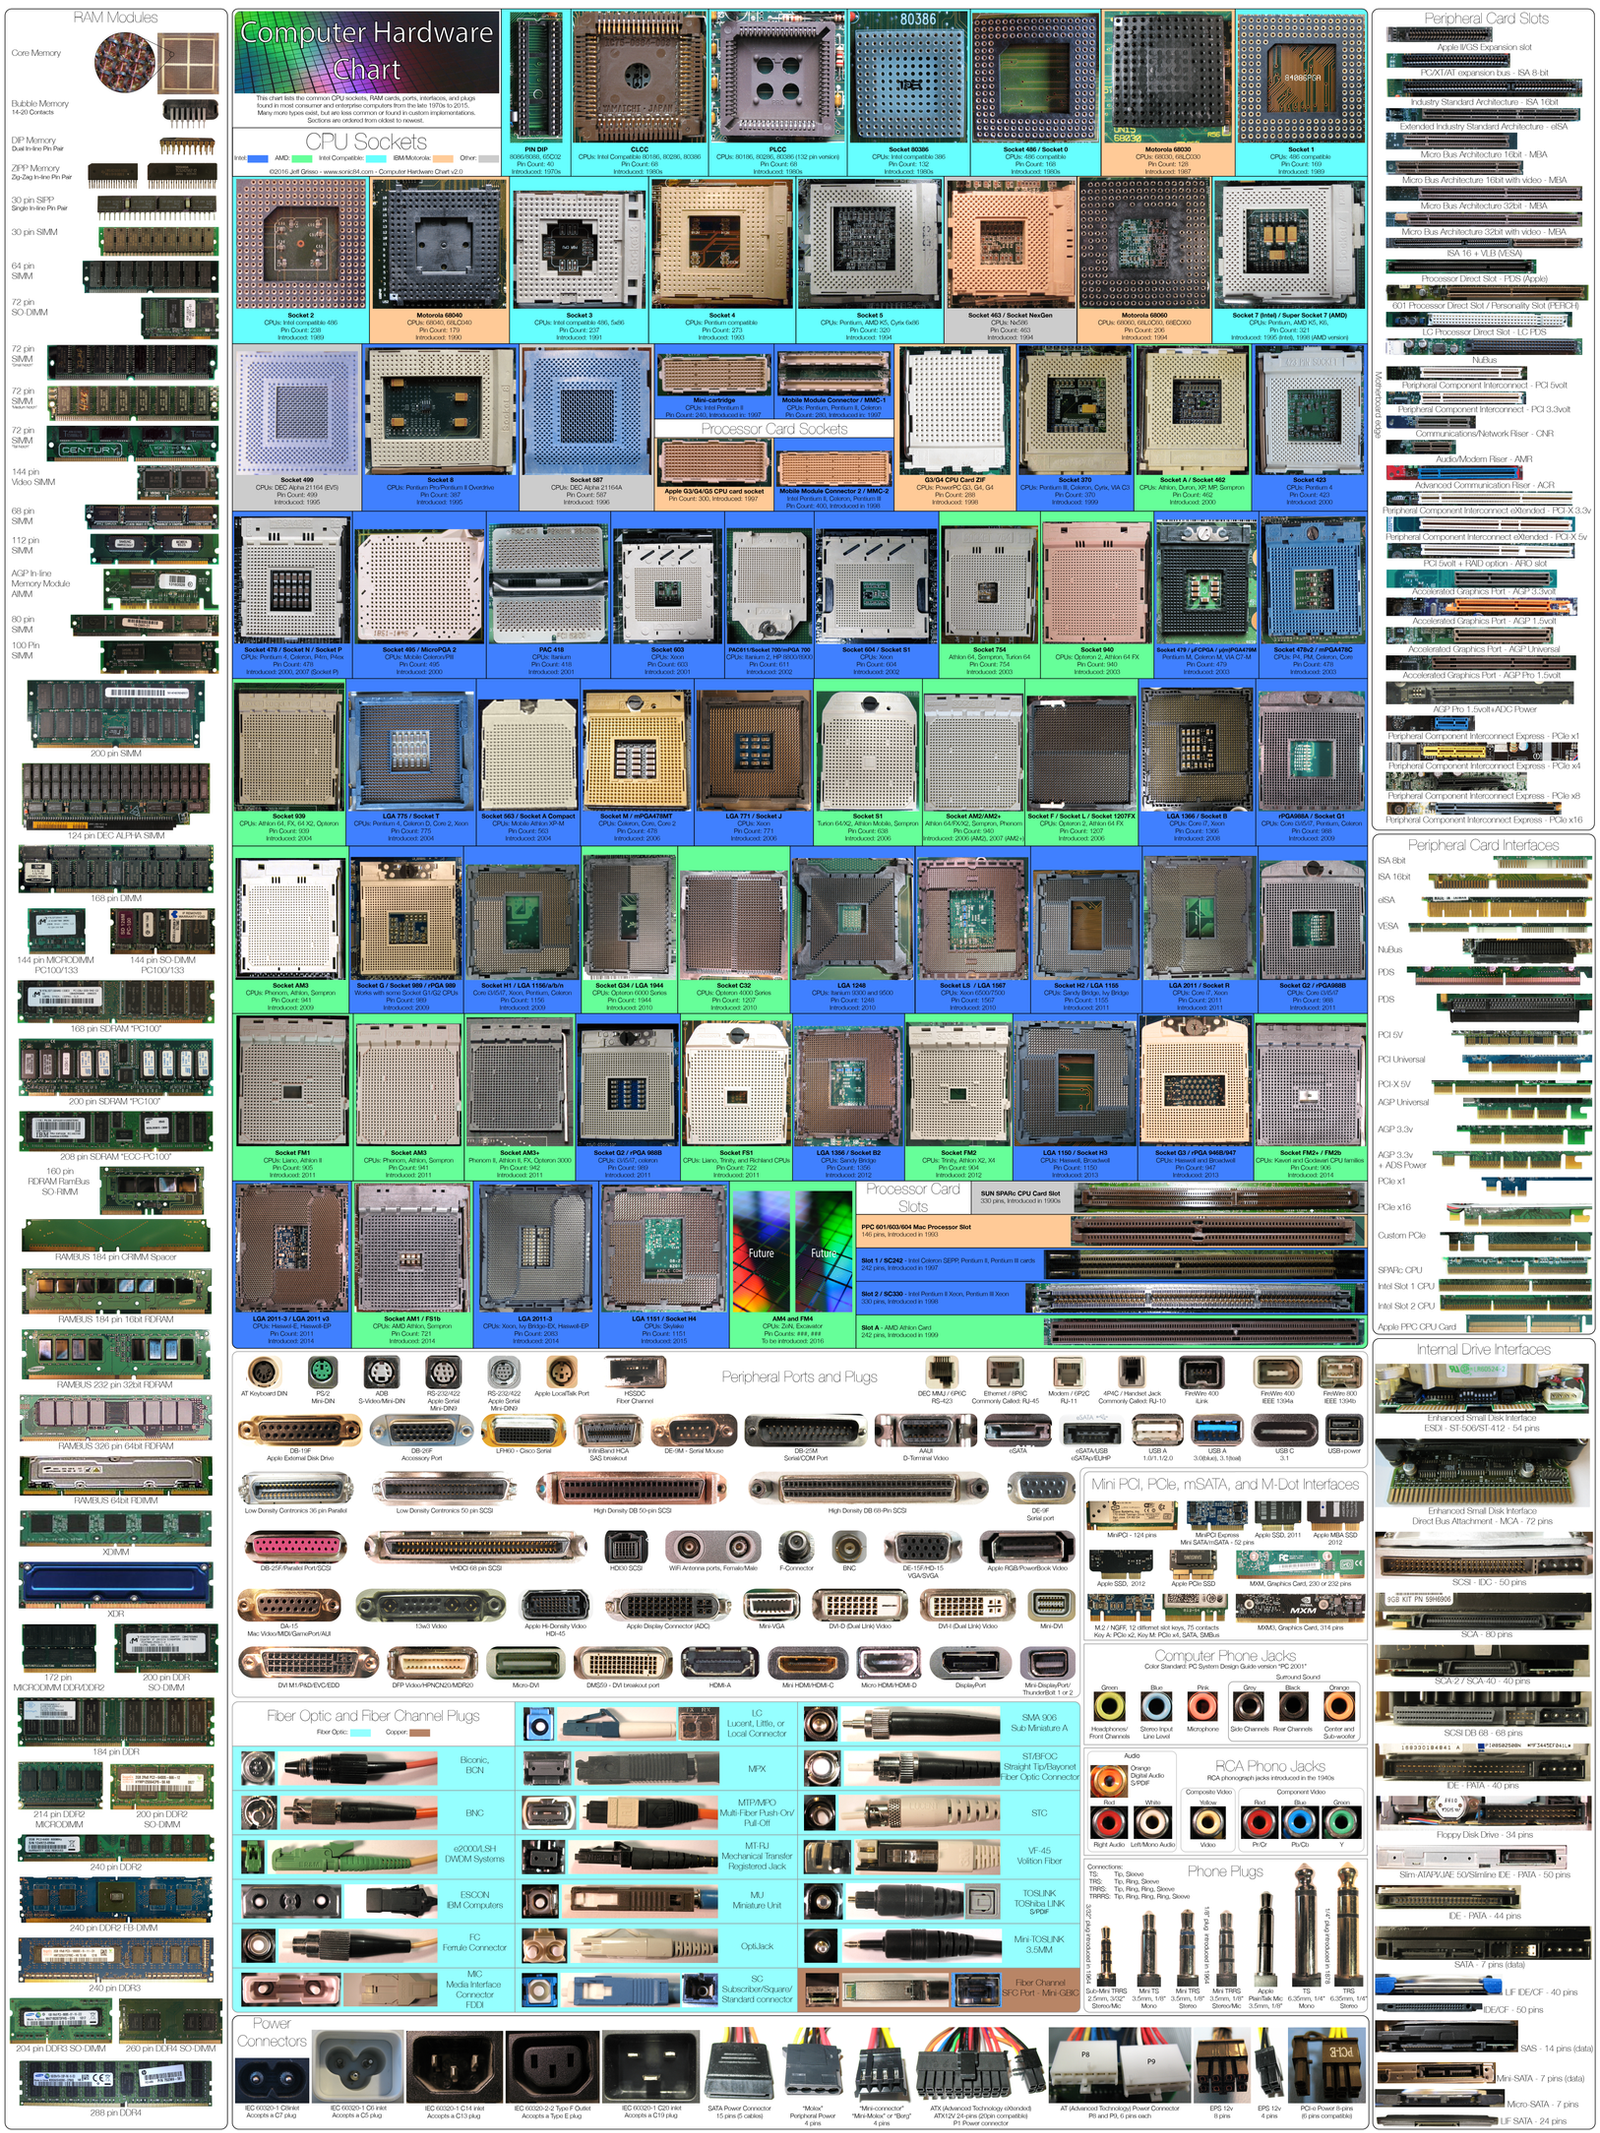 computer_hardware_chart_2_0_by_sonic840-d9pyk3j.png